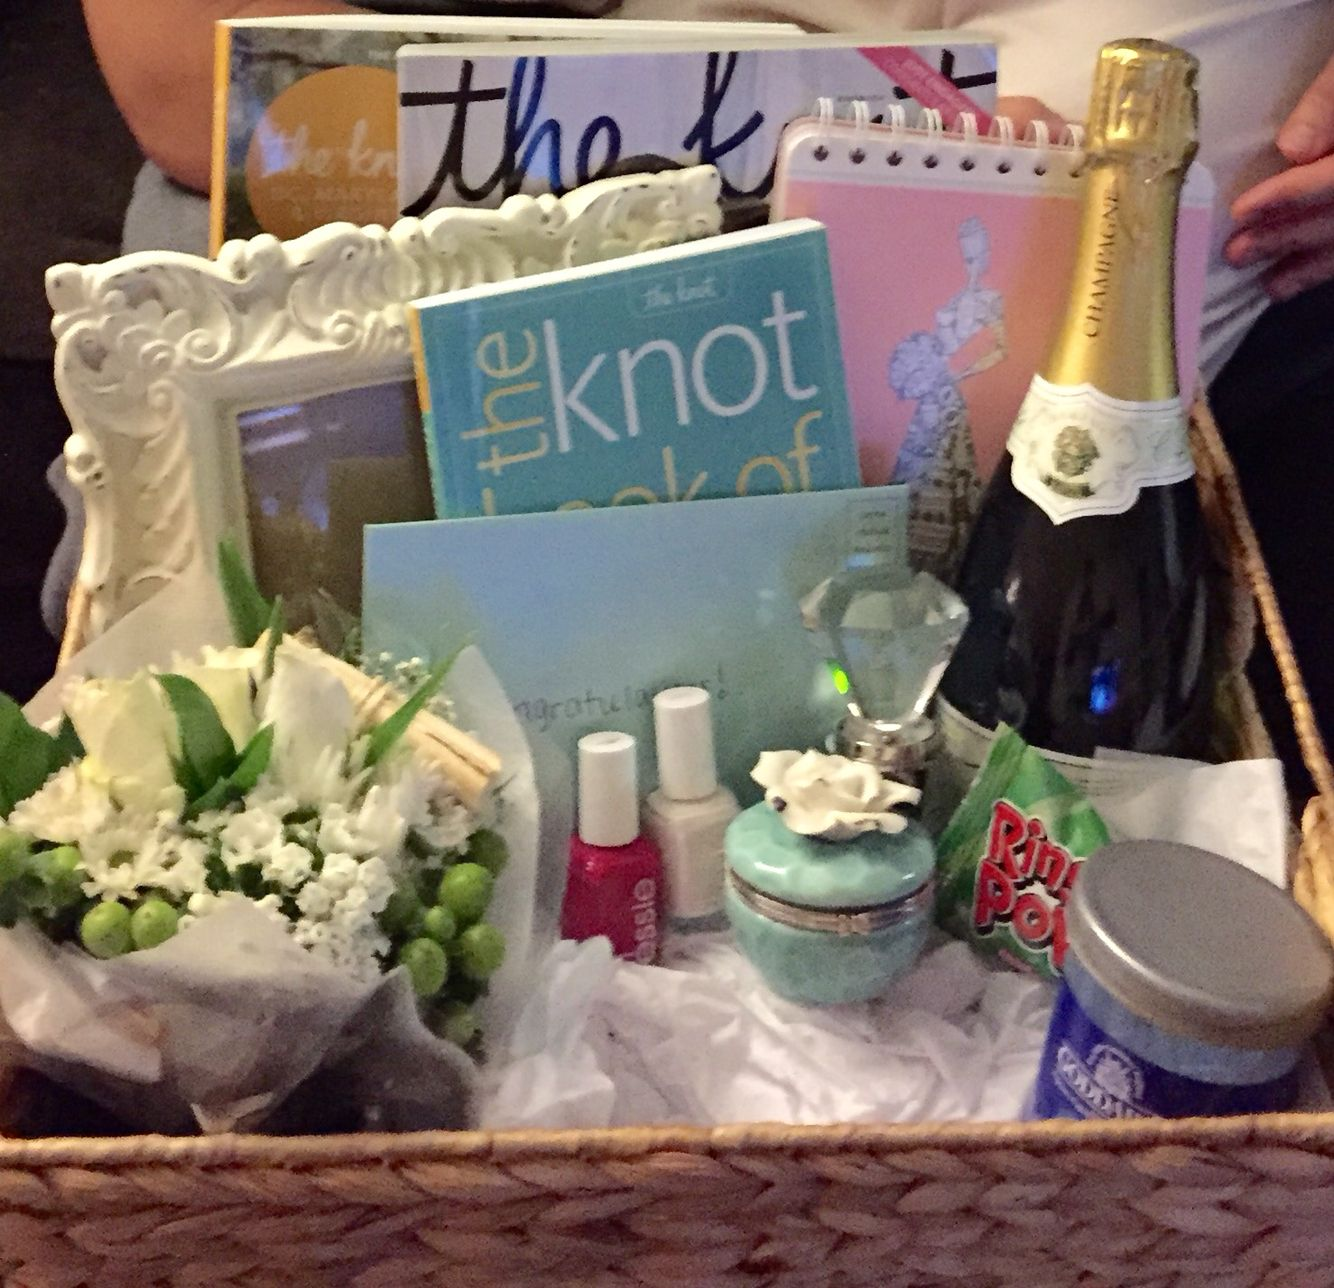 Engagement Basket I created for my best friend! 2 wedding